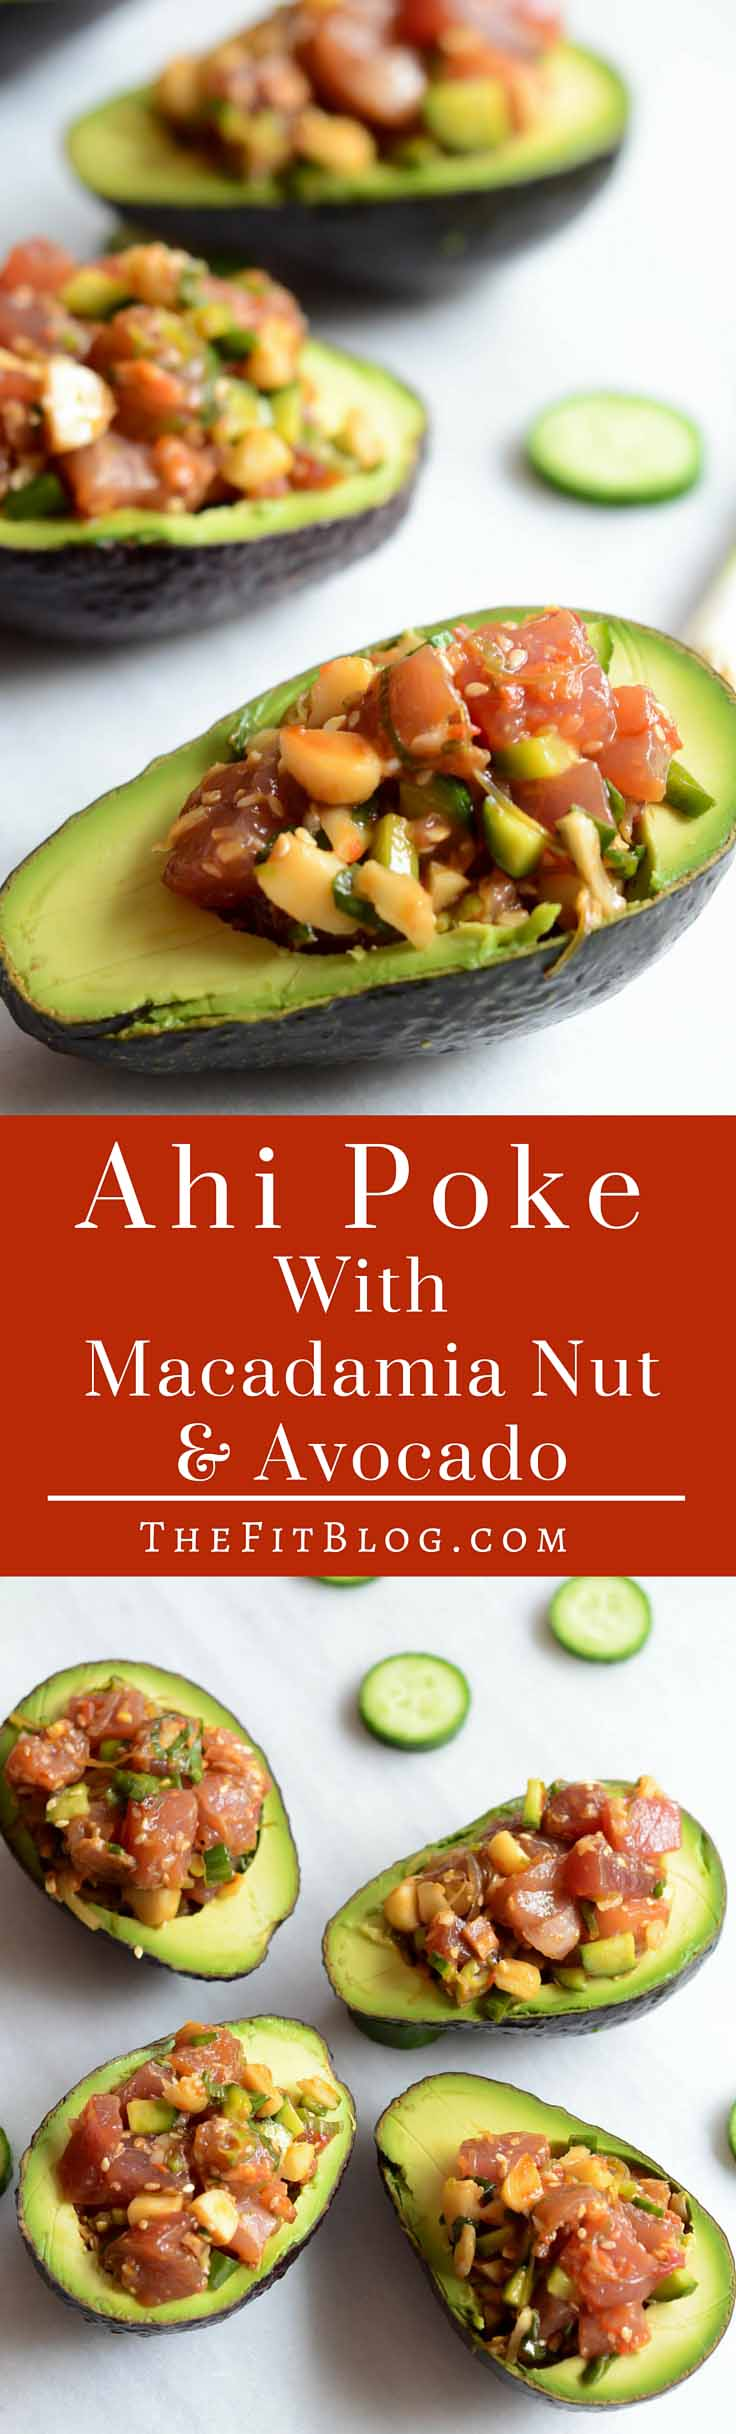 Ahi Poke Salad with Macadamia Nuts – This is the perfect high protein, quick, healthy fish recipe that will leave you feeling full yet refreshed every time you eat it.